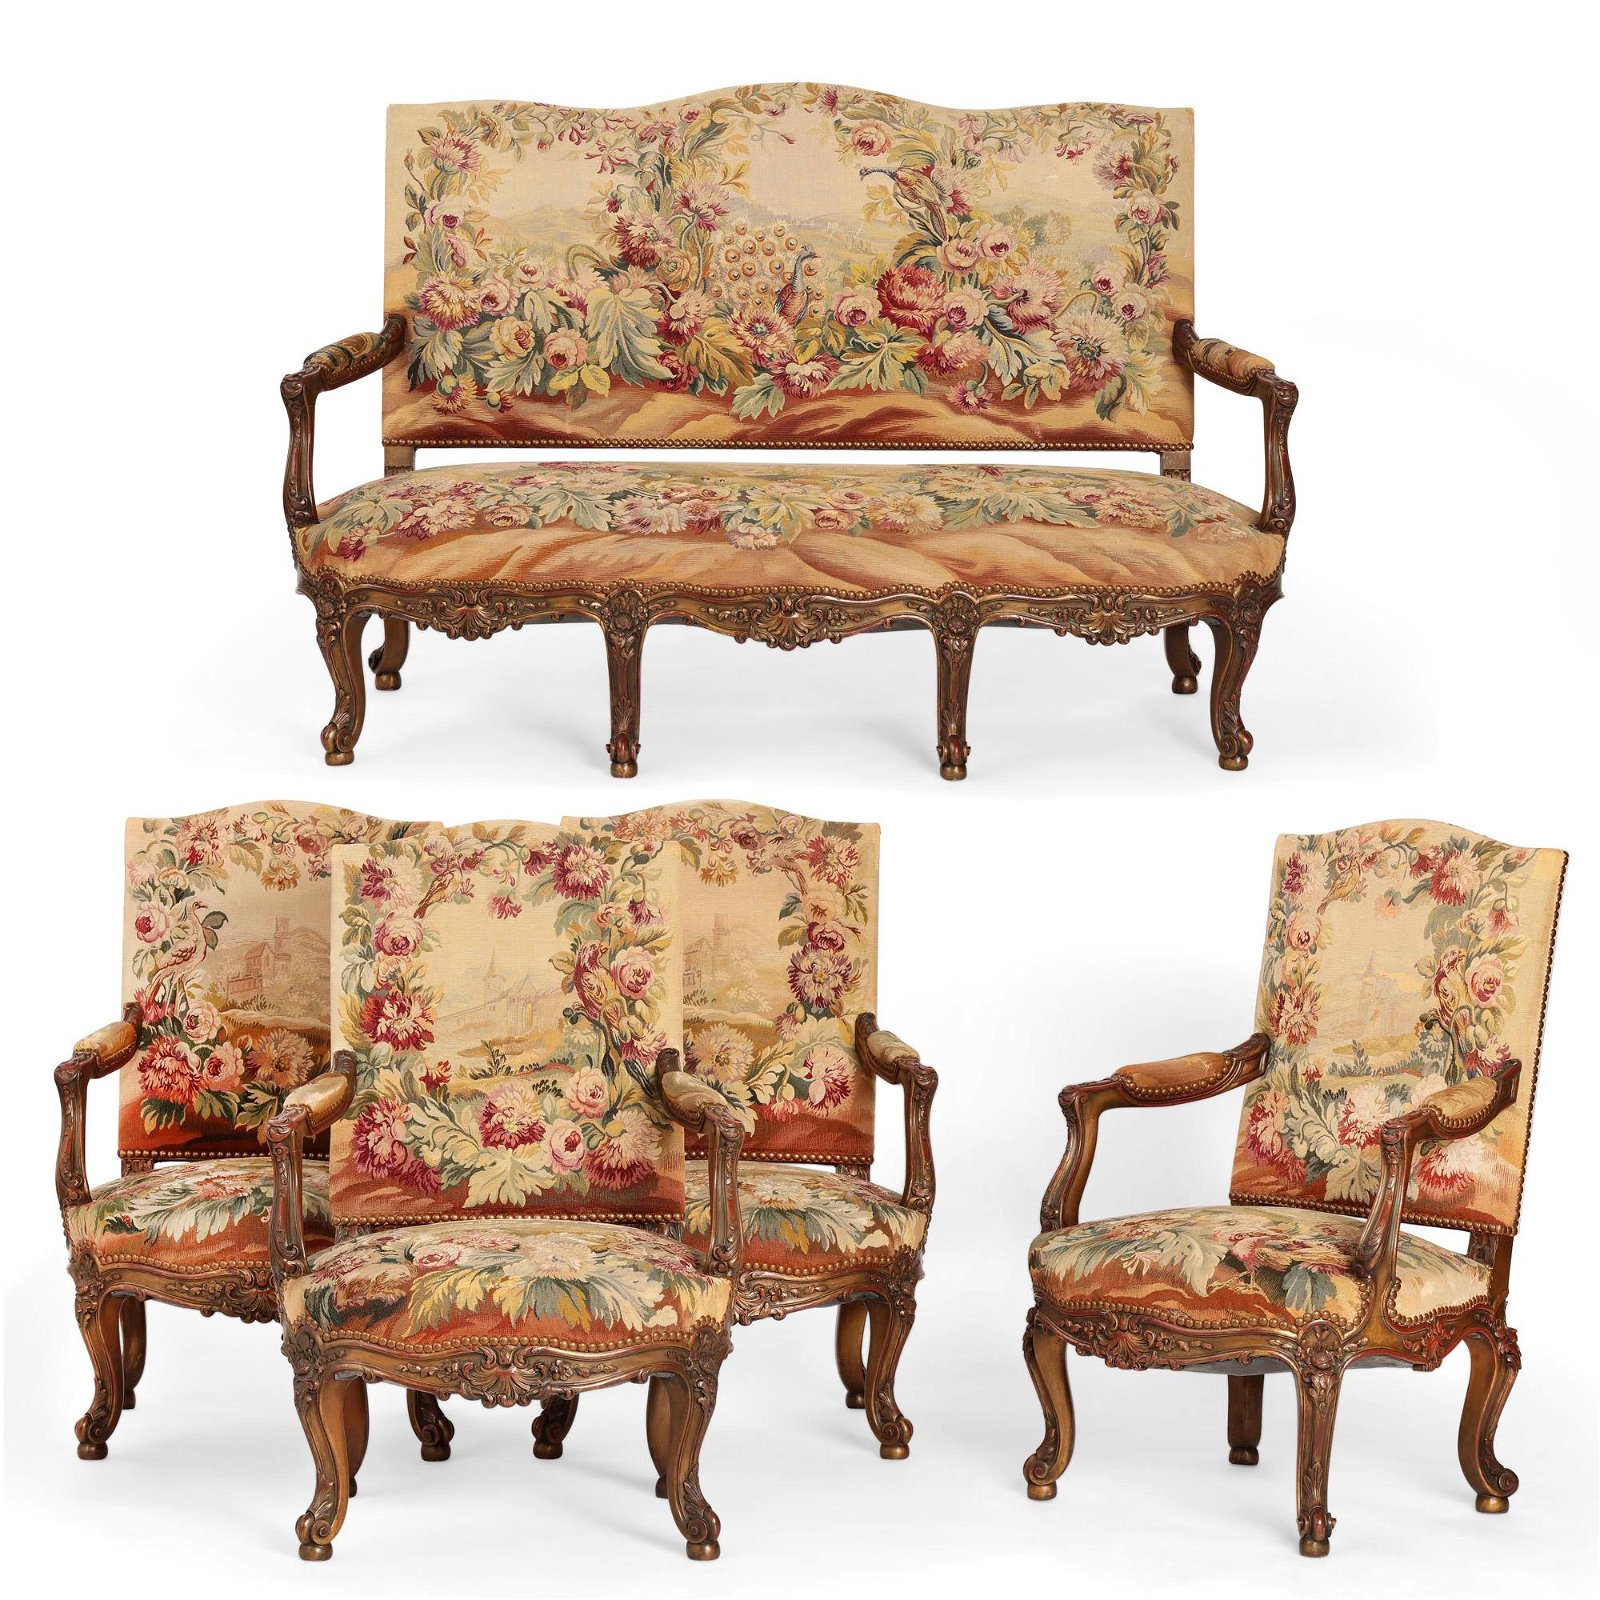 Suite of Louis XV style seat furniture